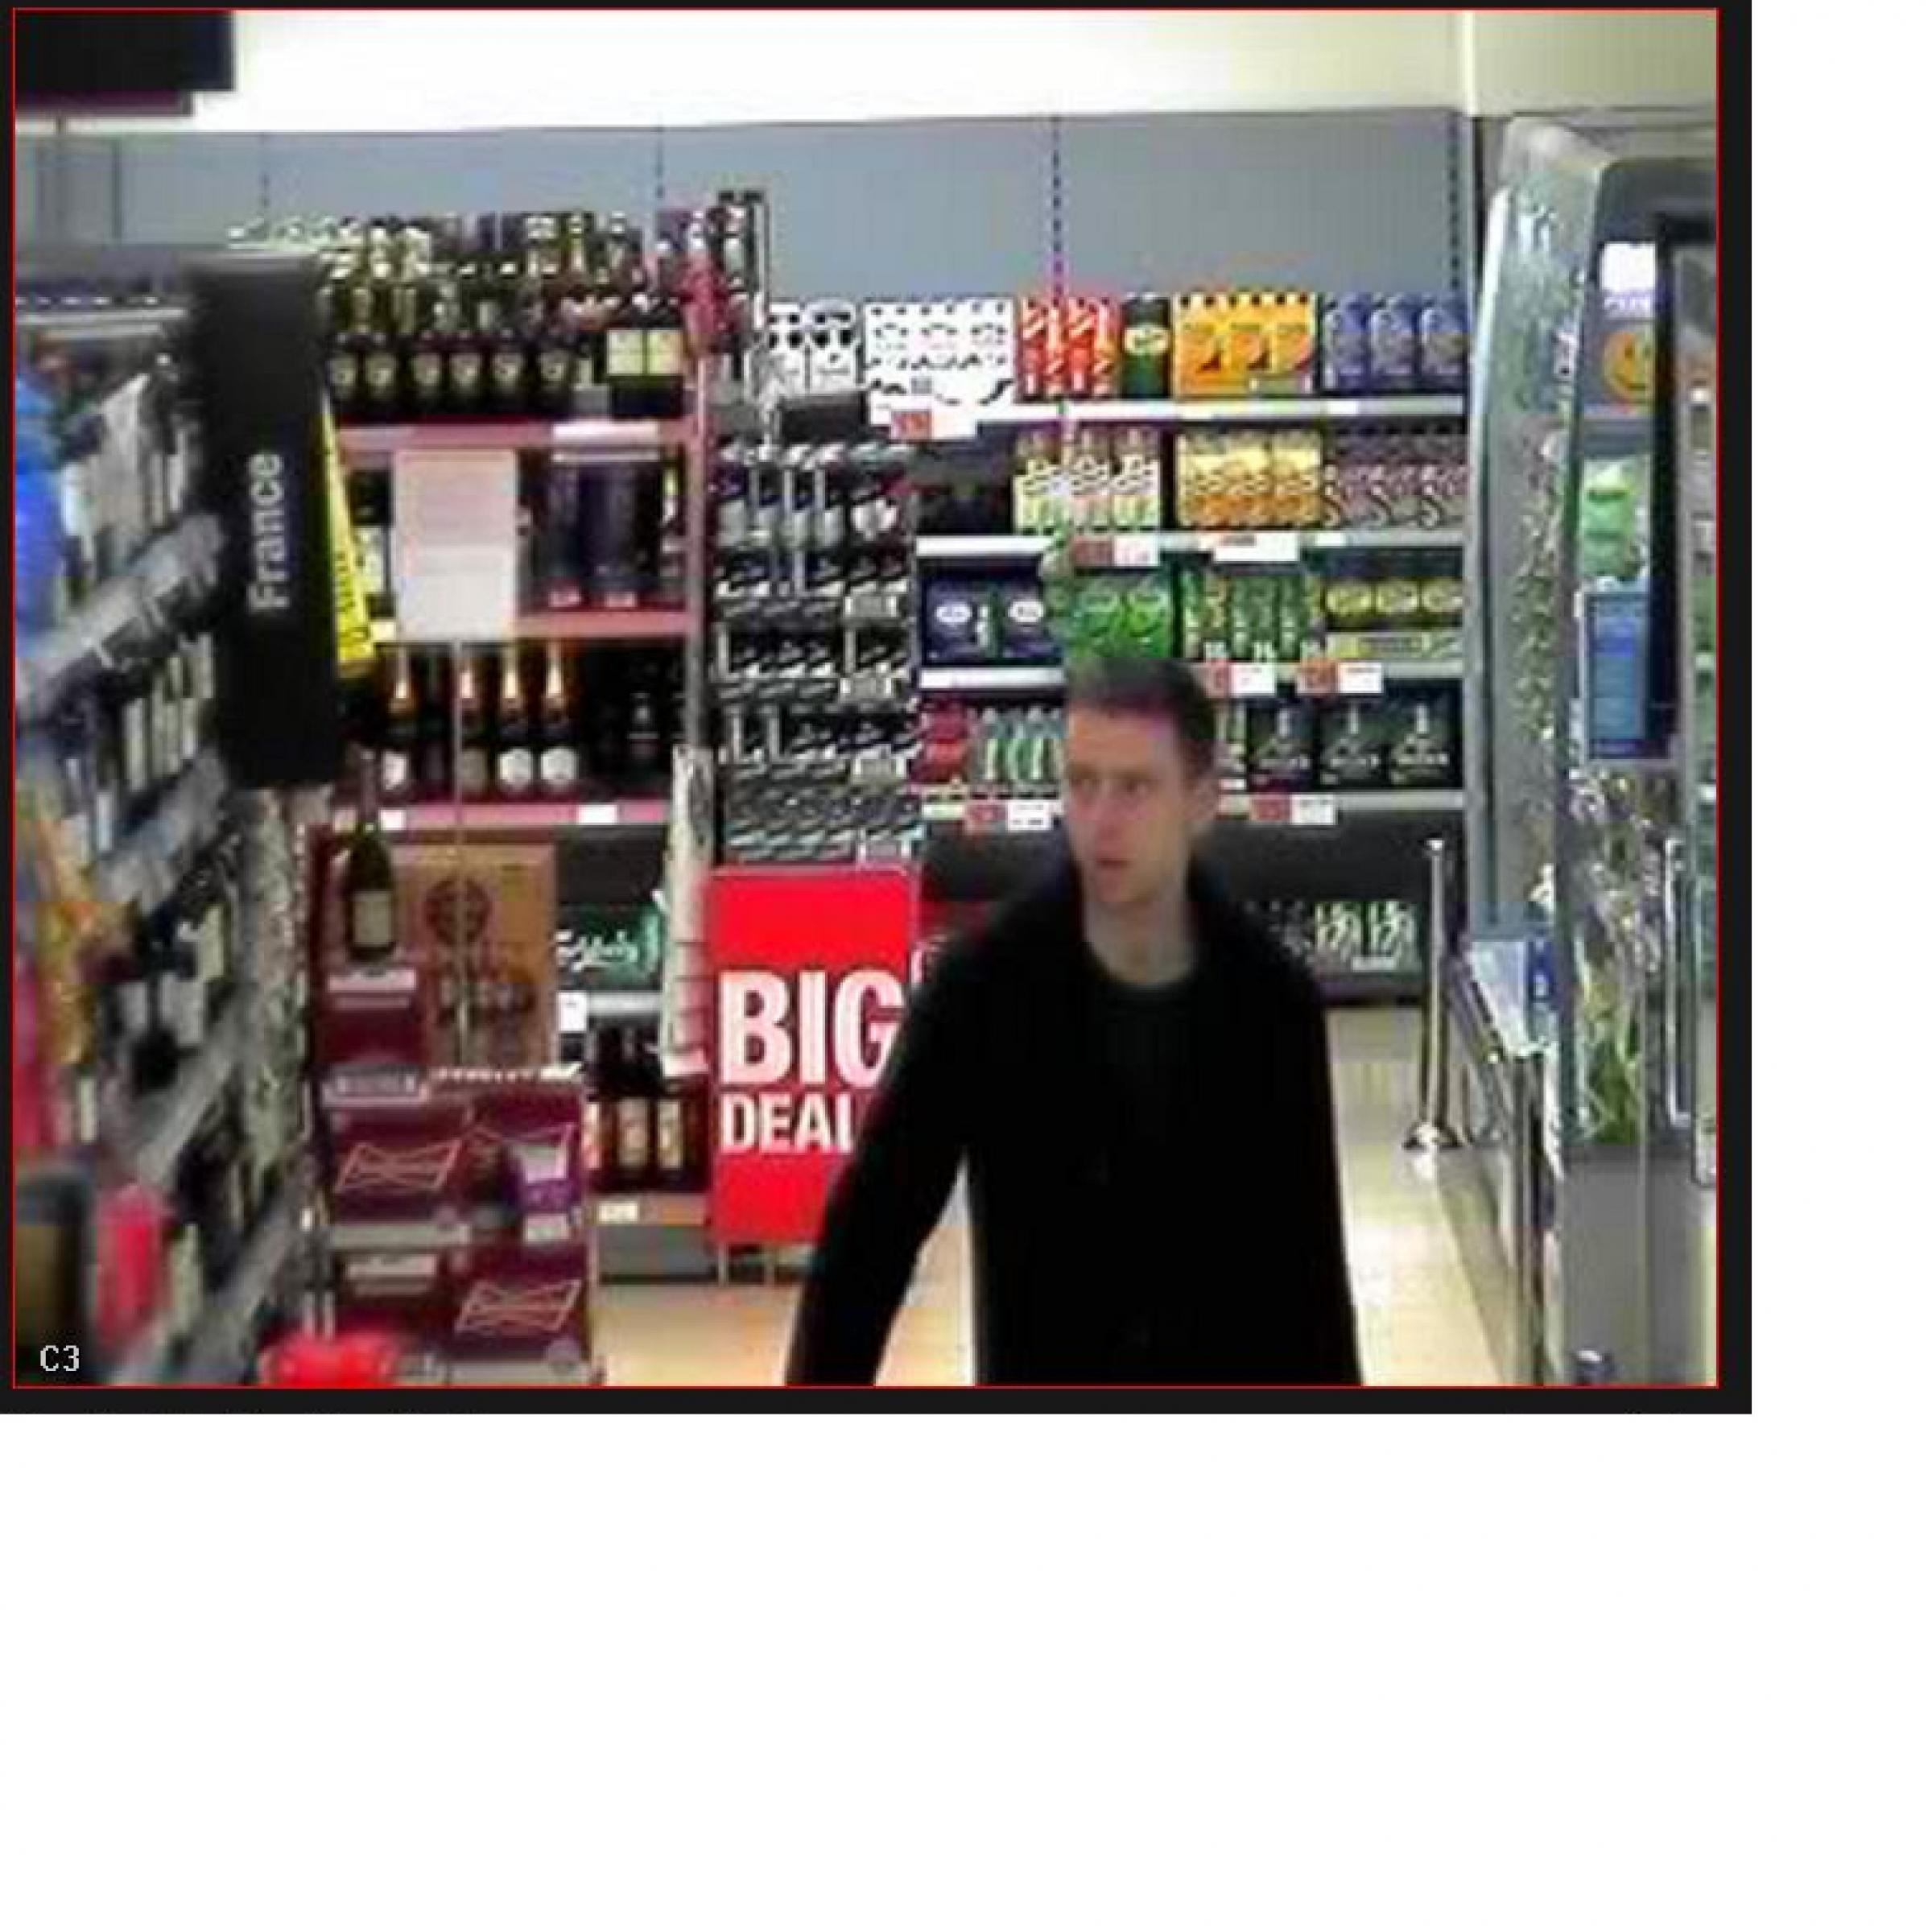 Staff chase off would be shoplifter after he tries to steal £200 of alcohol